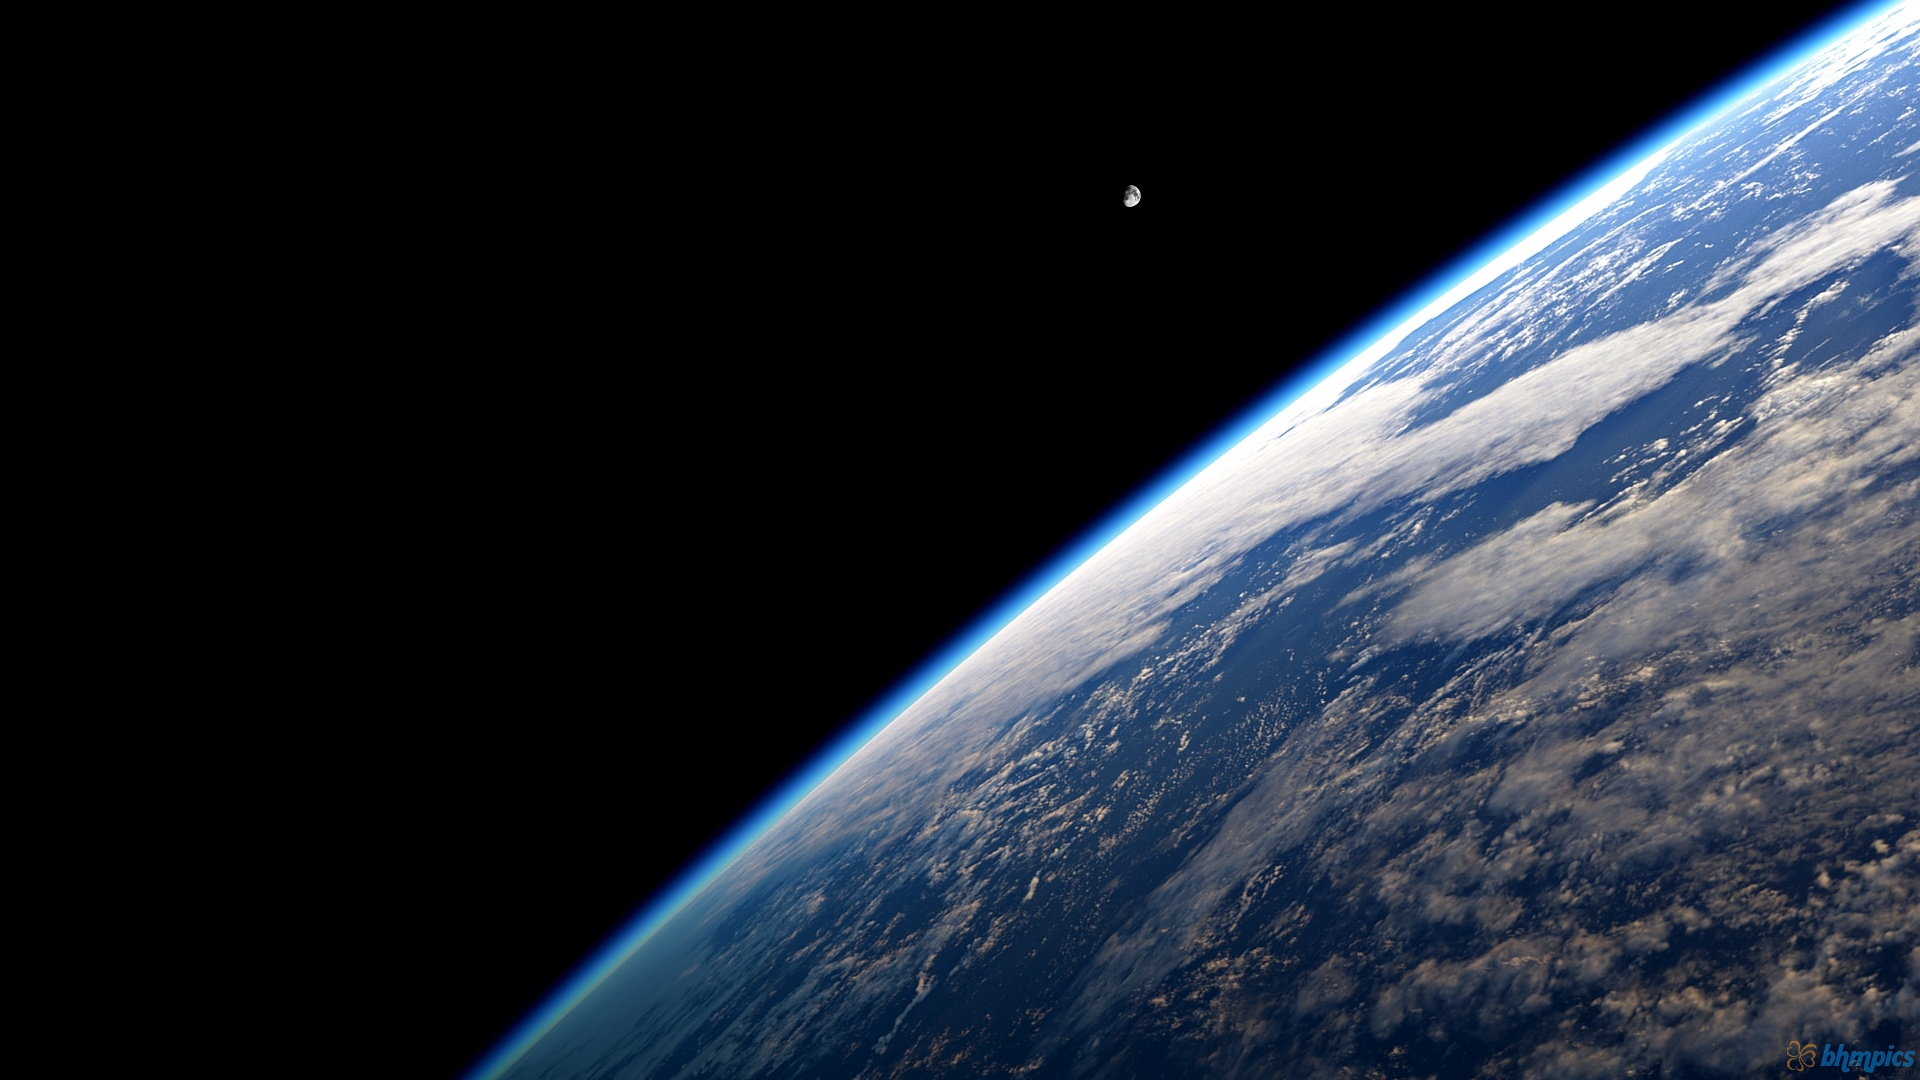 Earth atmosphere and night-1920x1080.jpg